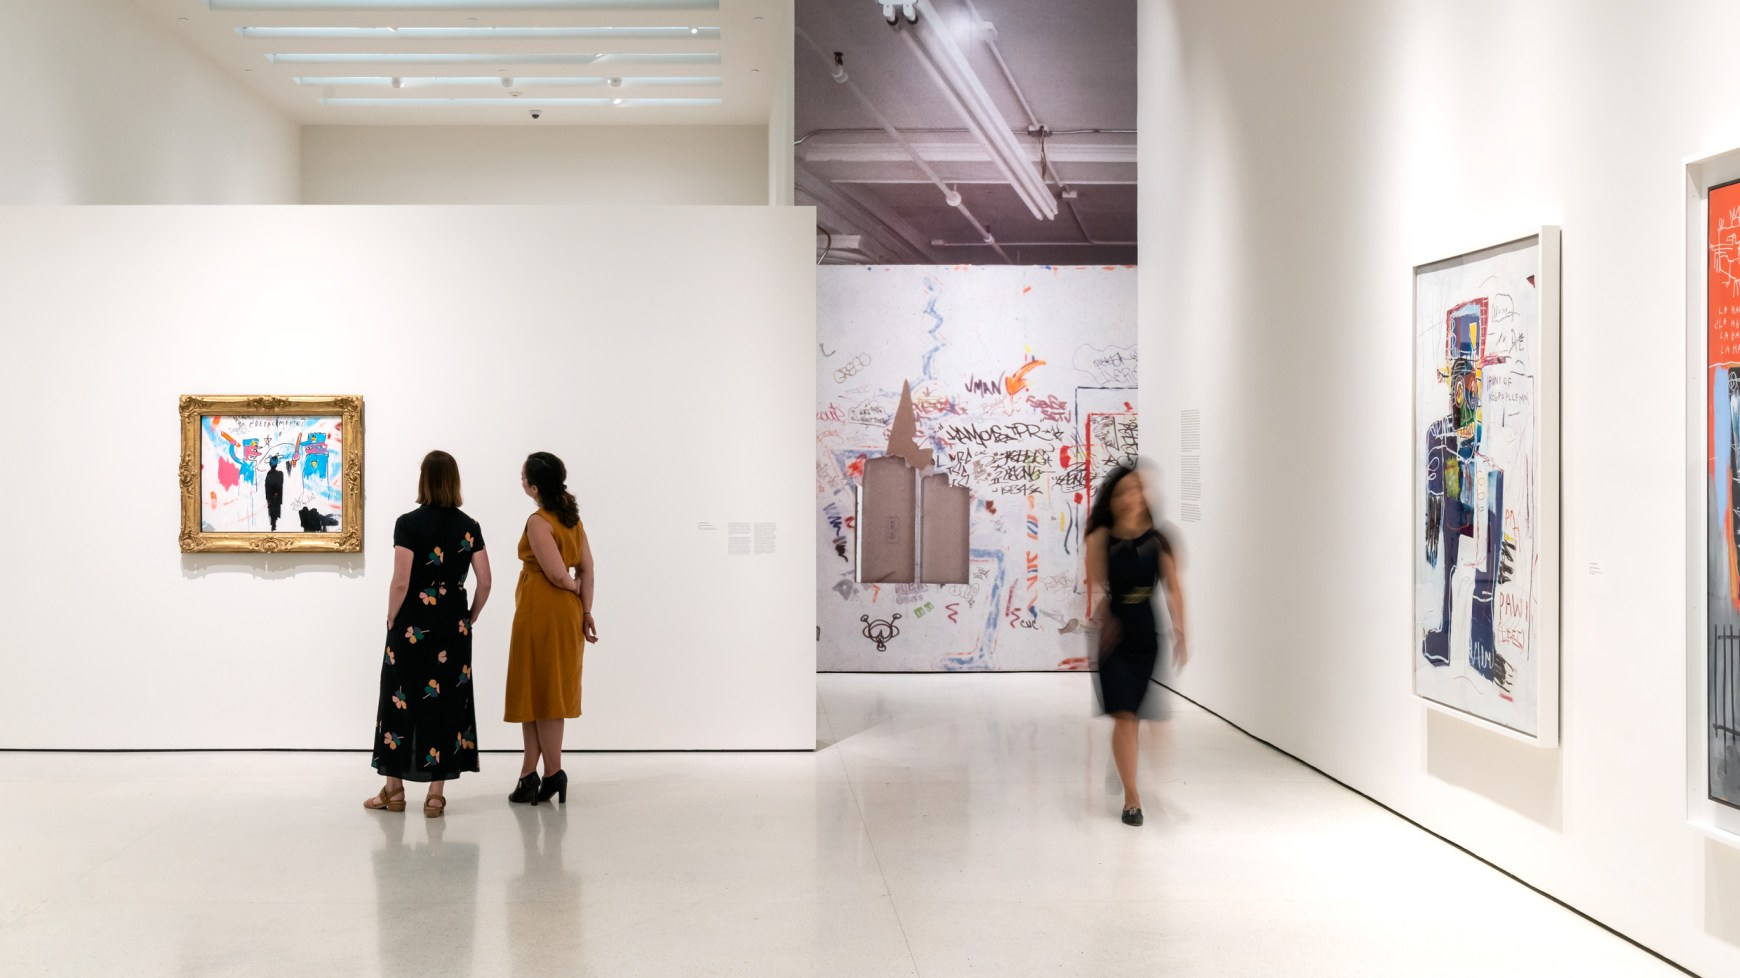 Two women look at Basquiat's painting The Death of Michael Stewart, while another woman walks by in the gallery, which has supporting works on the walls